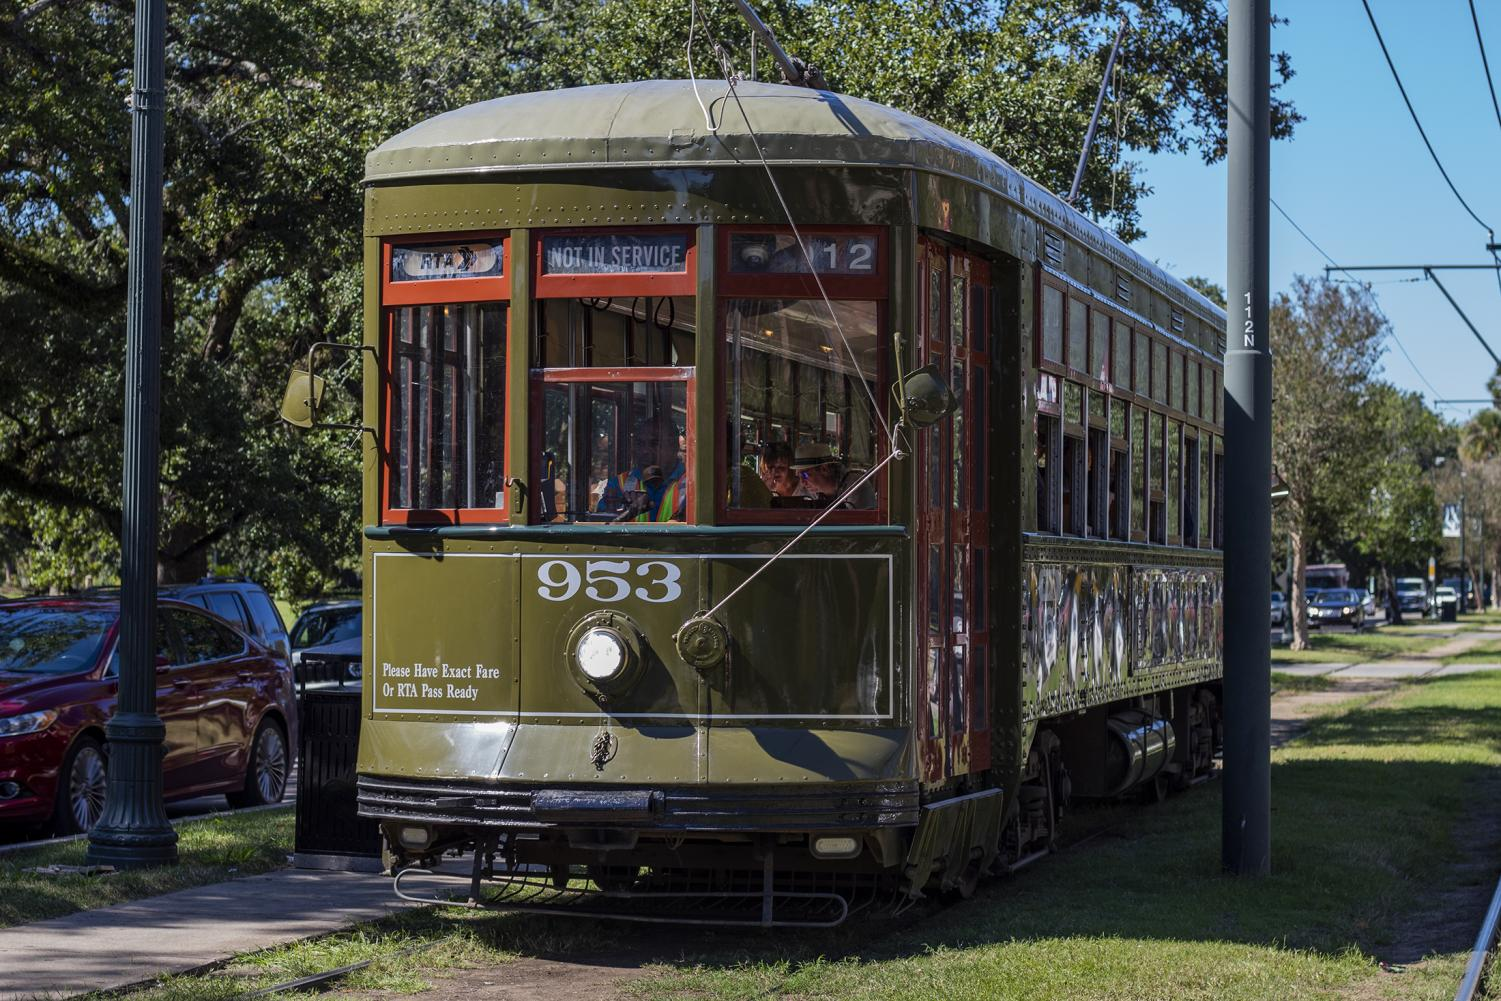 Streetcar headed toward S Carrollton Ave on October 23, 2019. This is one of the main forms of public transportation in New Orleans. Cristian Orellana/The Maroon.